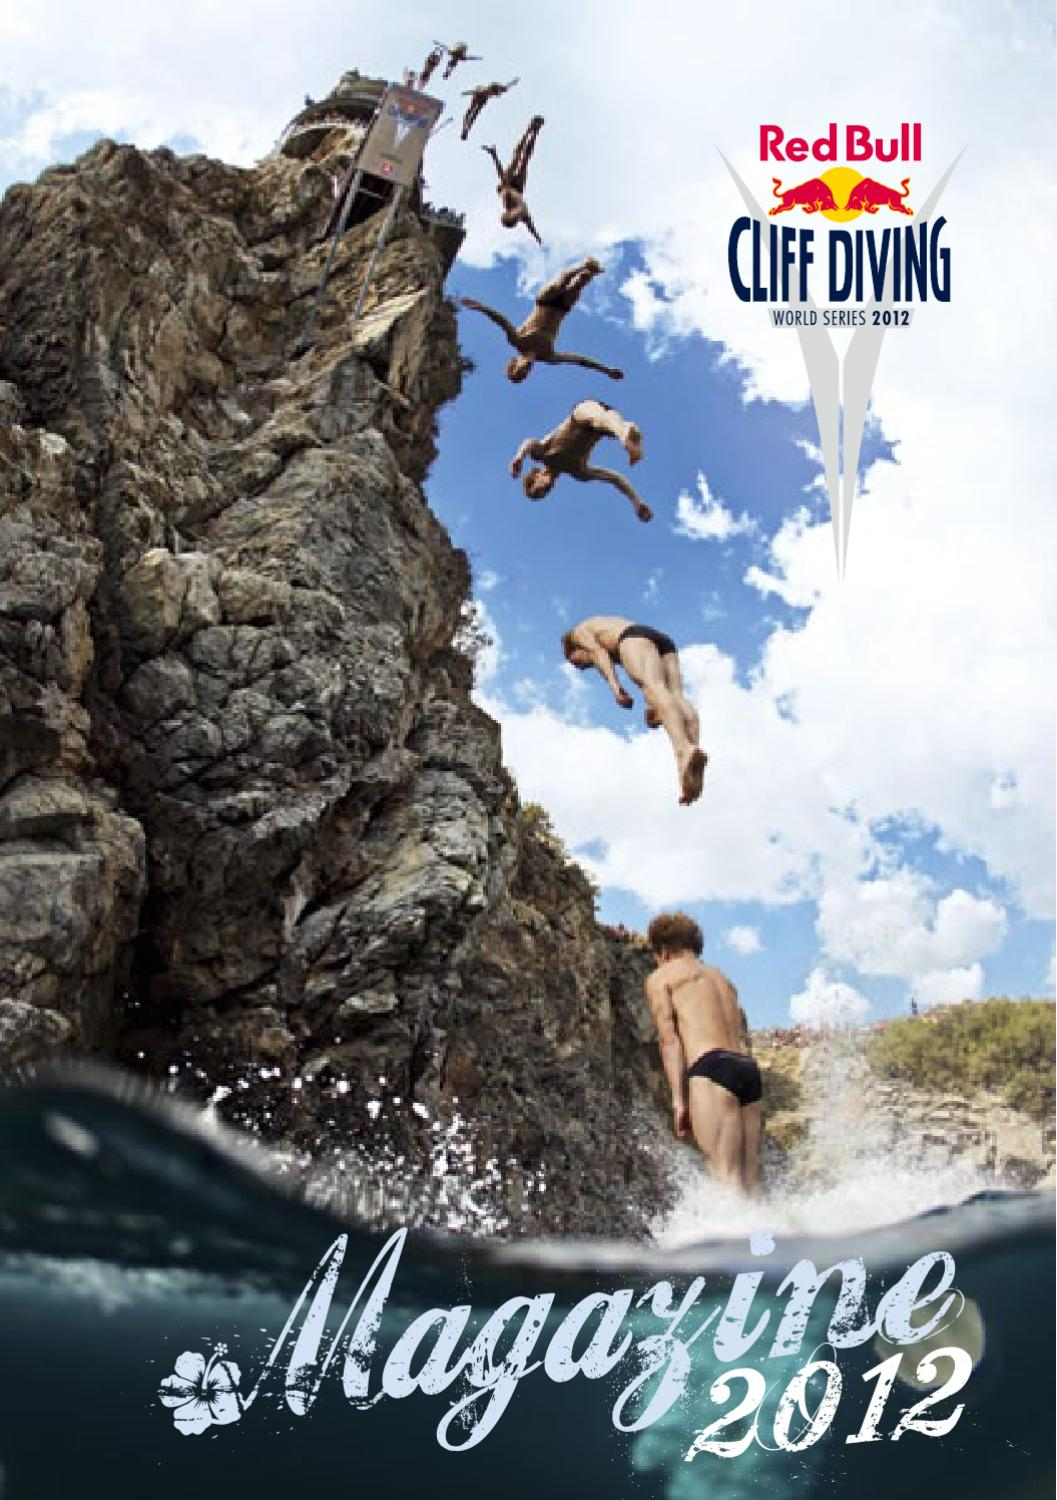 Red Bull Cliff Diving Height : cliff, diving, height, Cliff, Diving, Magazine, Media, House, Issuu